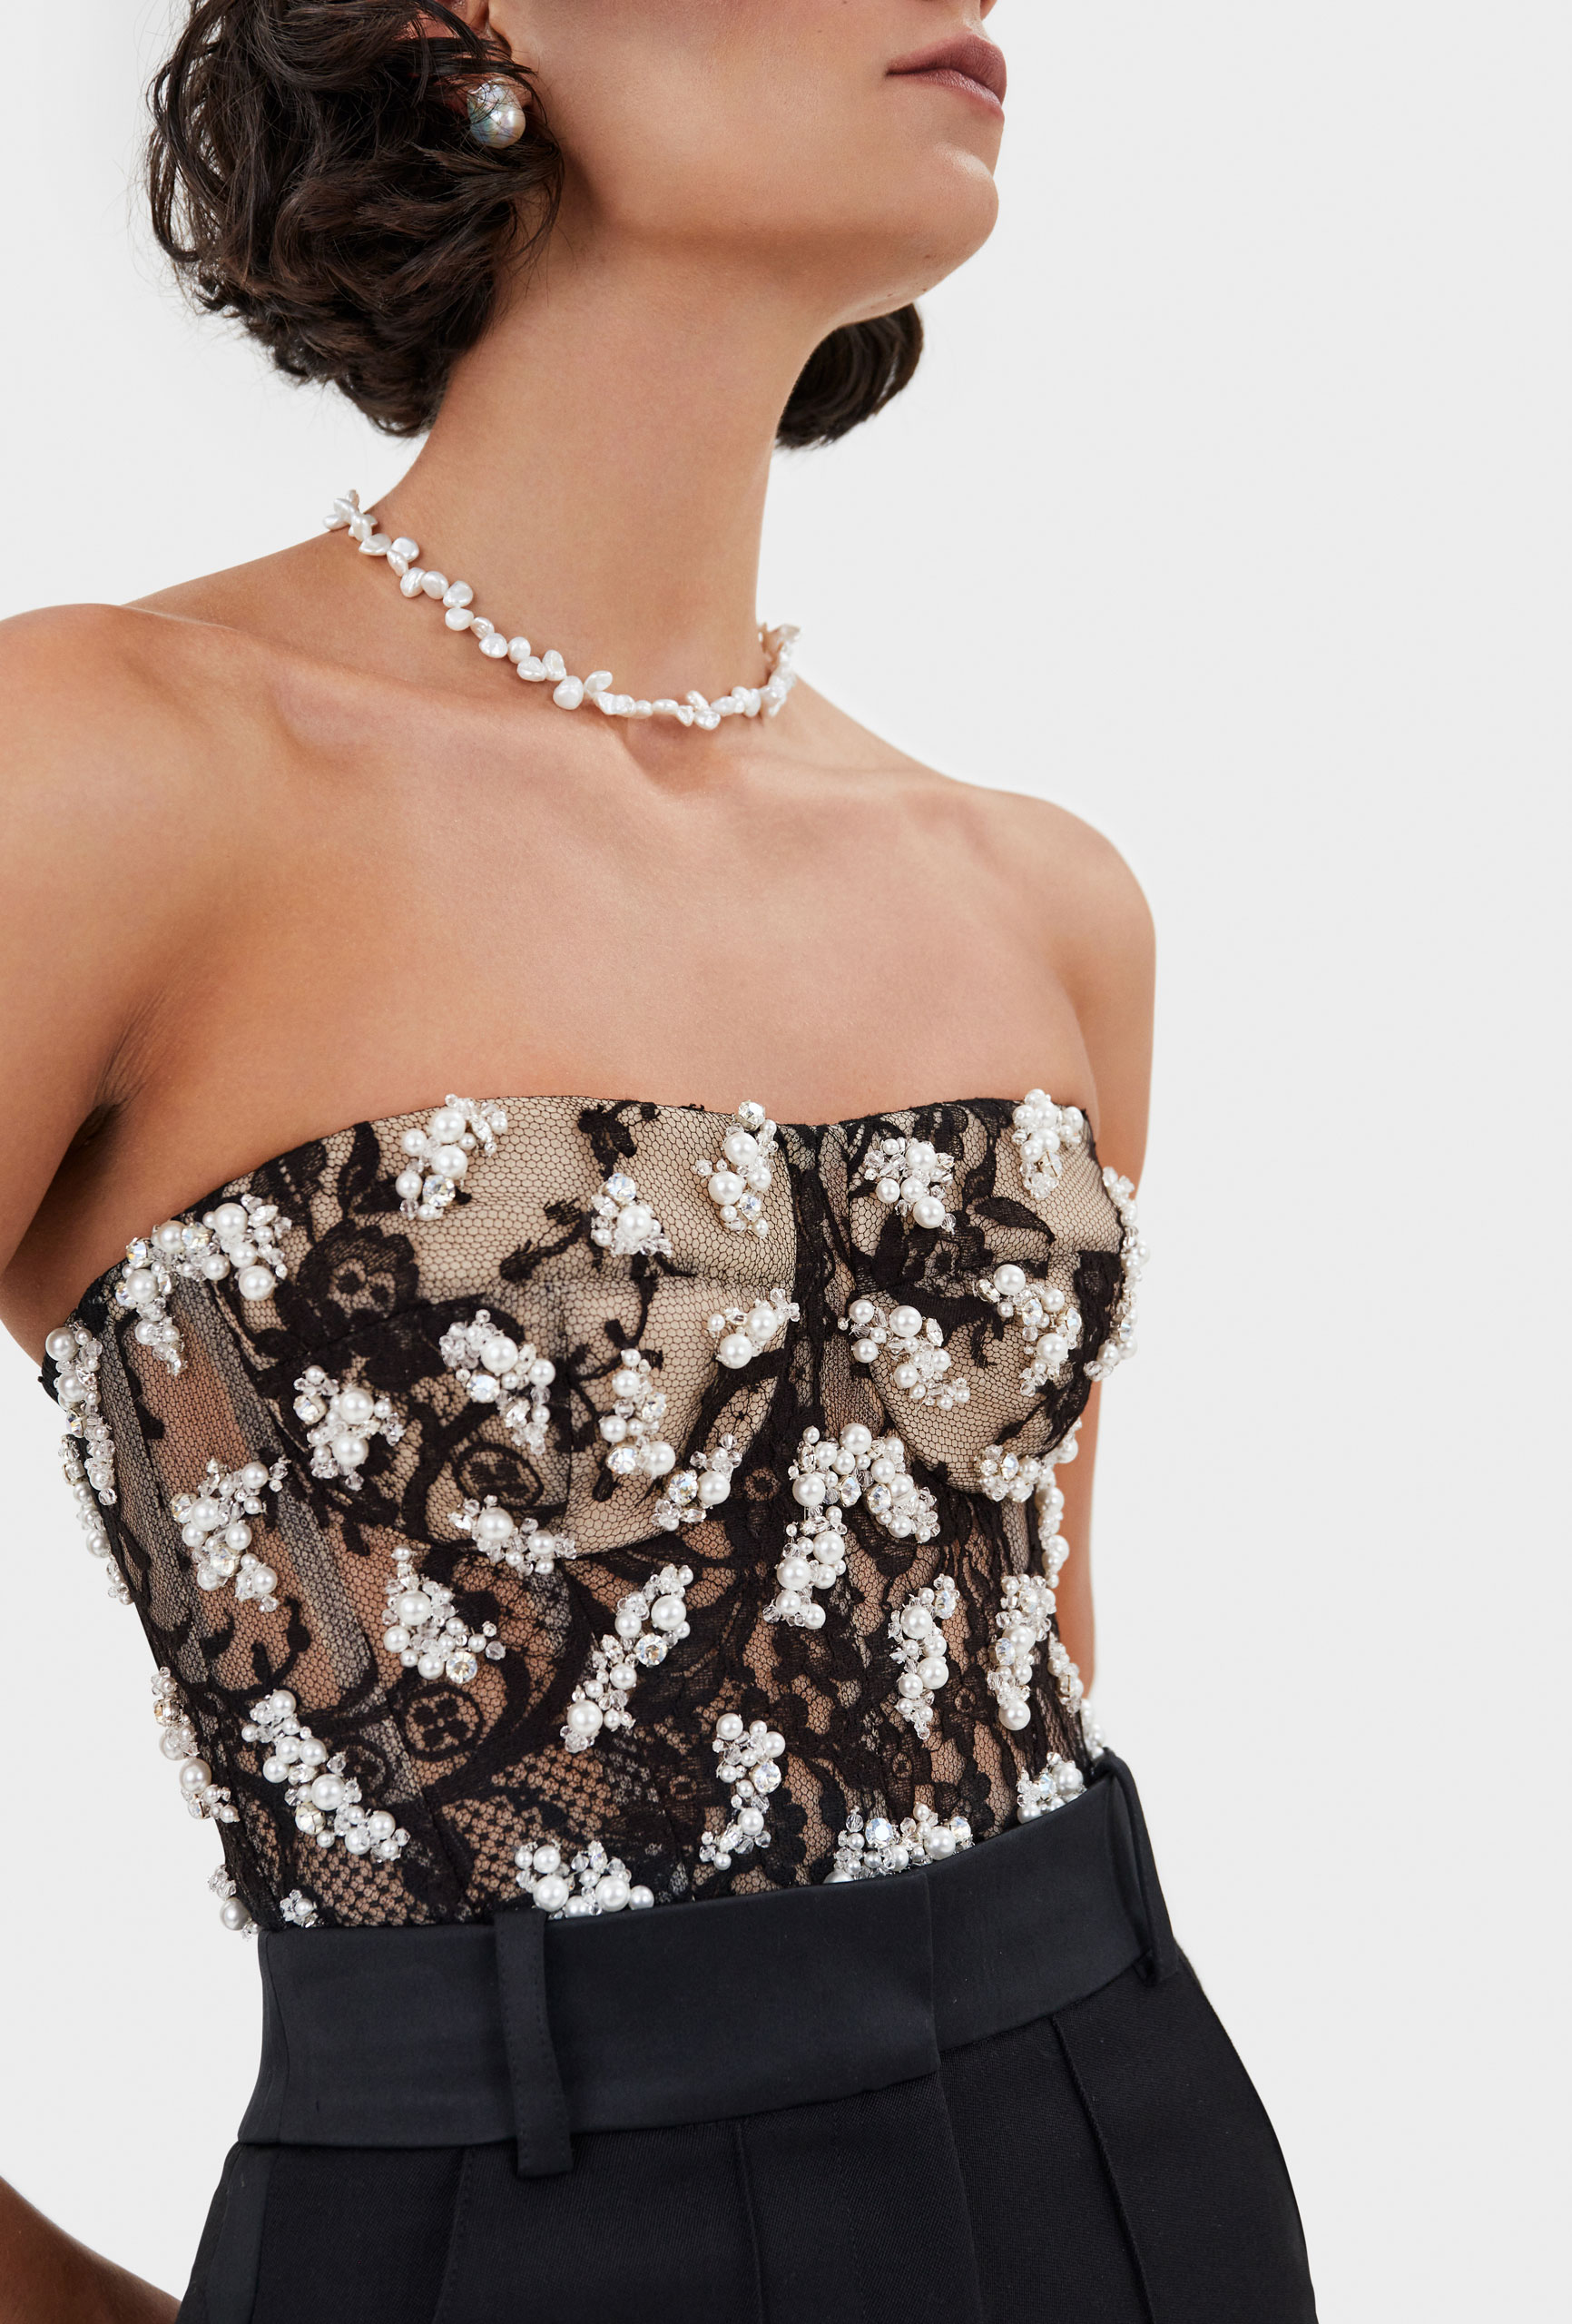 Thom Laurence Bustier, Crystal and pearl clusters, French Lace, Hand embellishment, made in London